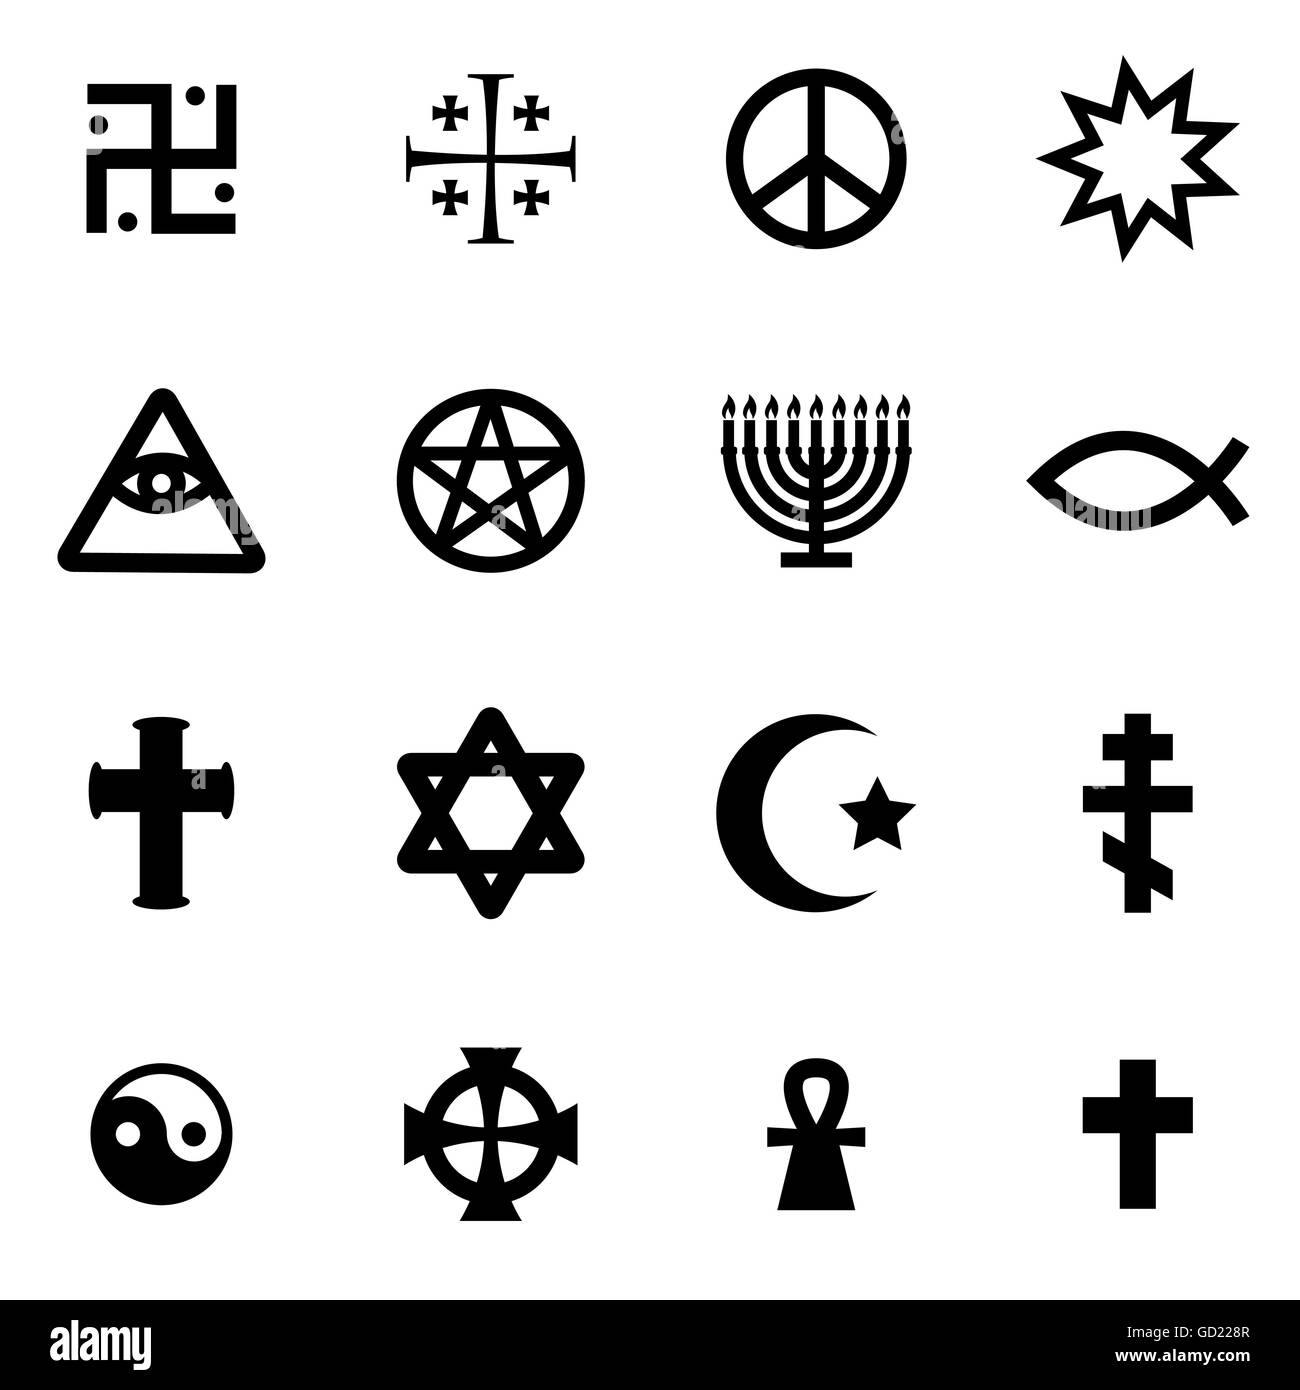 Religion Symbols Black And White Stock Photos Images Alamy